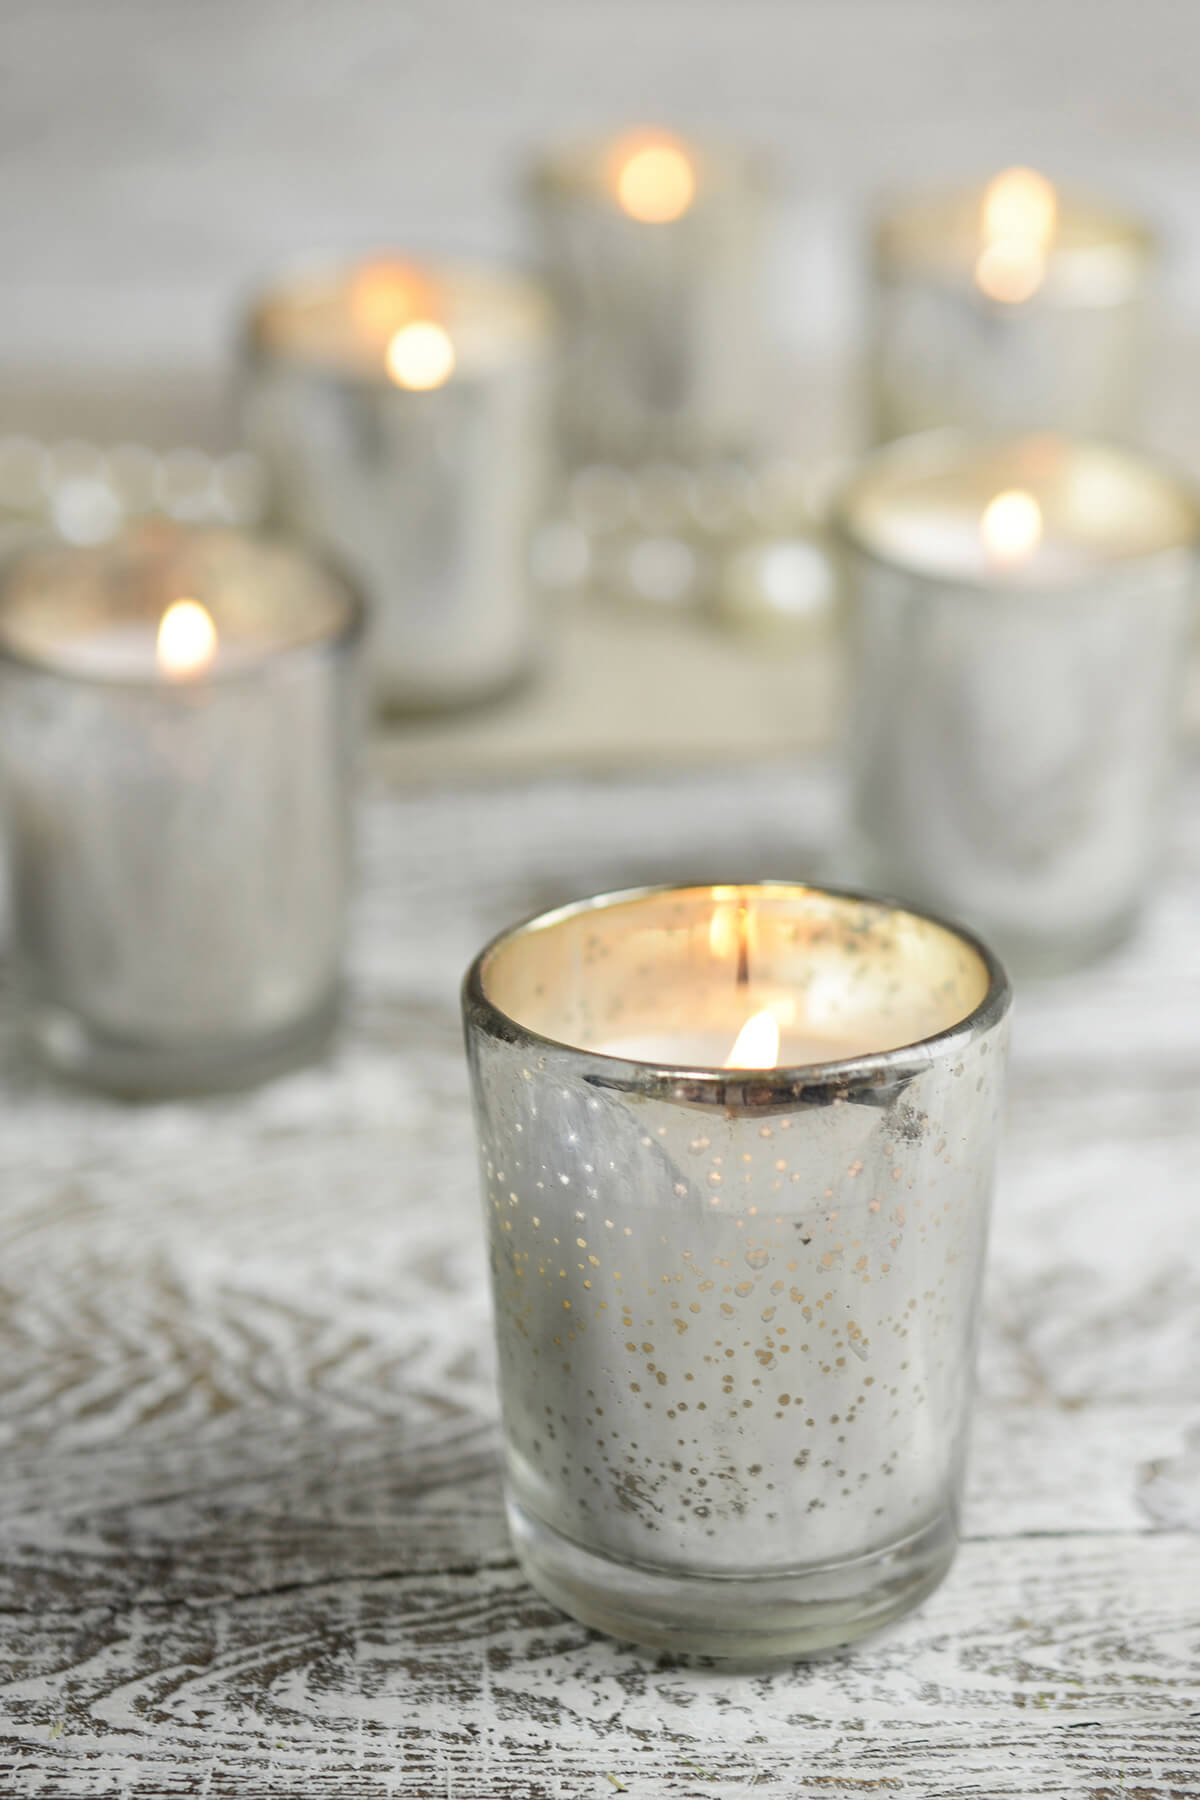 Mercury Votive Candles $5